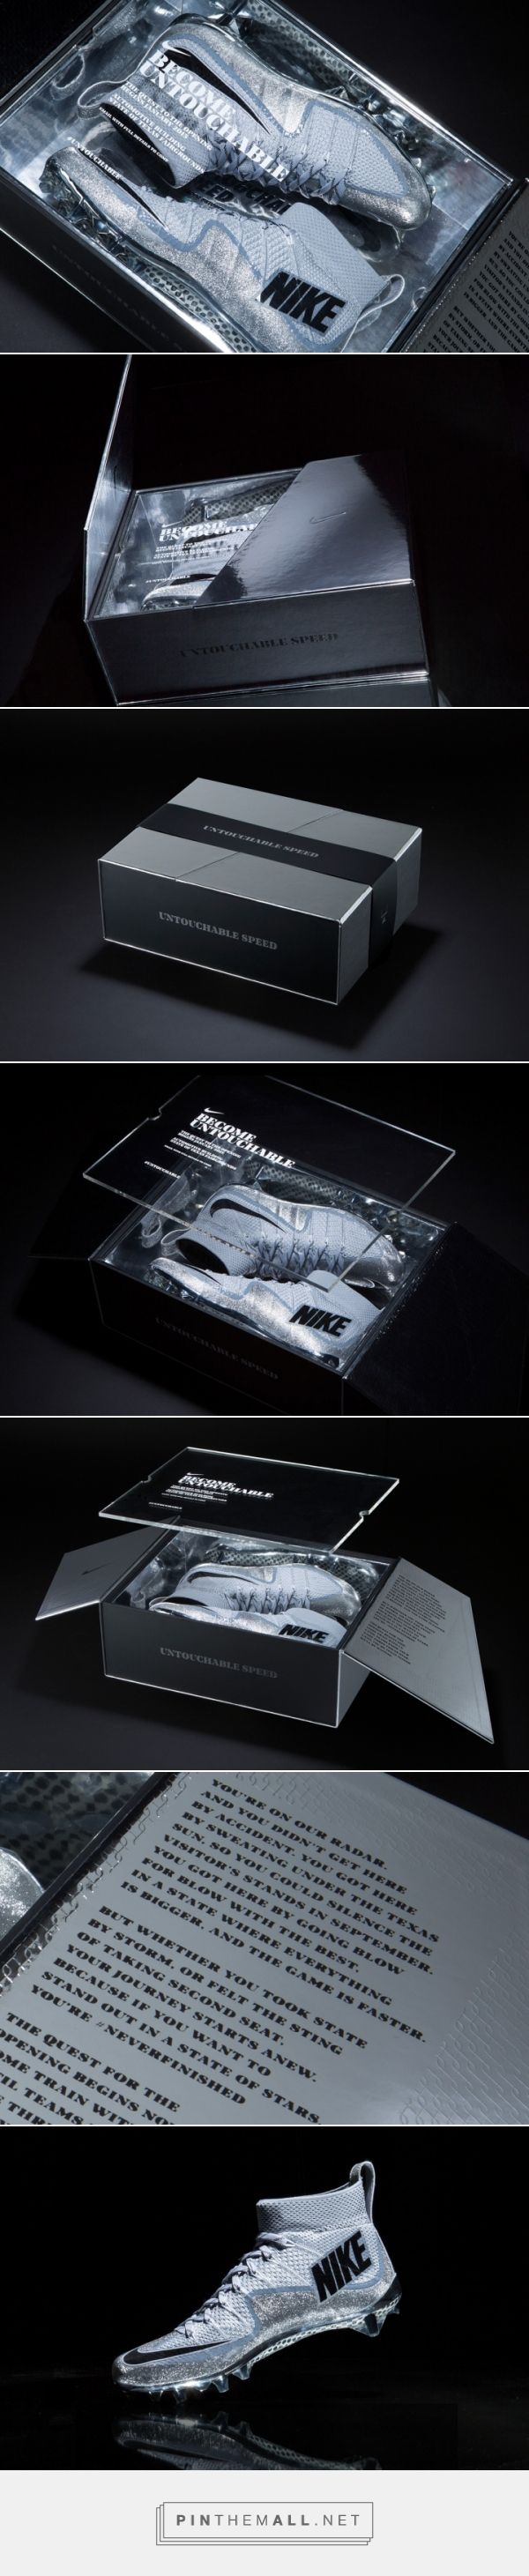 8 best 礼盒 images on Pinterest | Brand design, Design packaging and ...